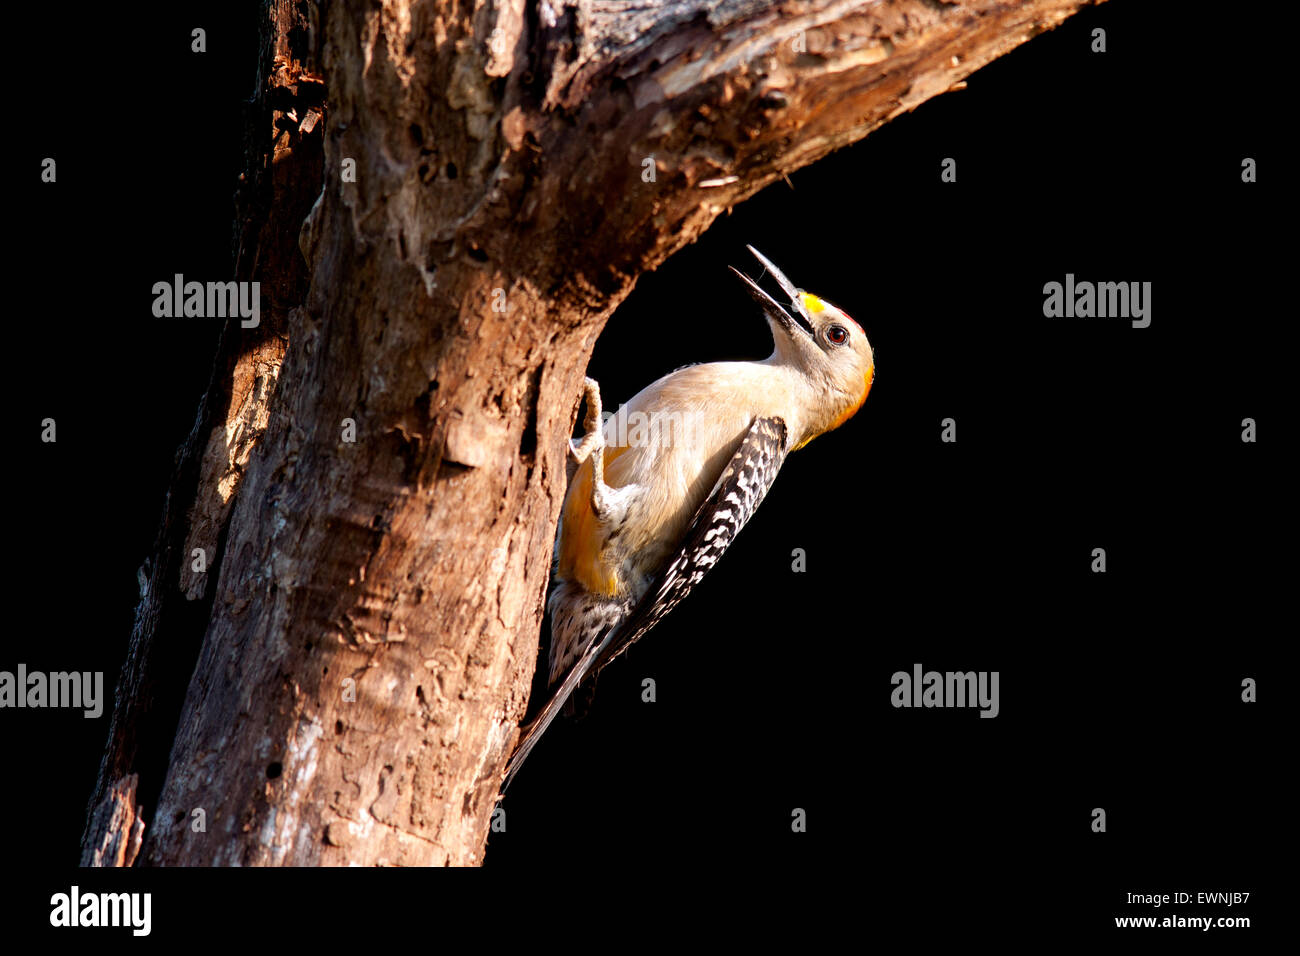 Male Golden-fronted Woodpecker (Melanerpes aurifrons) - Camp Lula Sams, Brownsville, Texas, USA Stock Photo